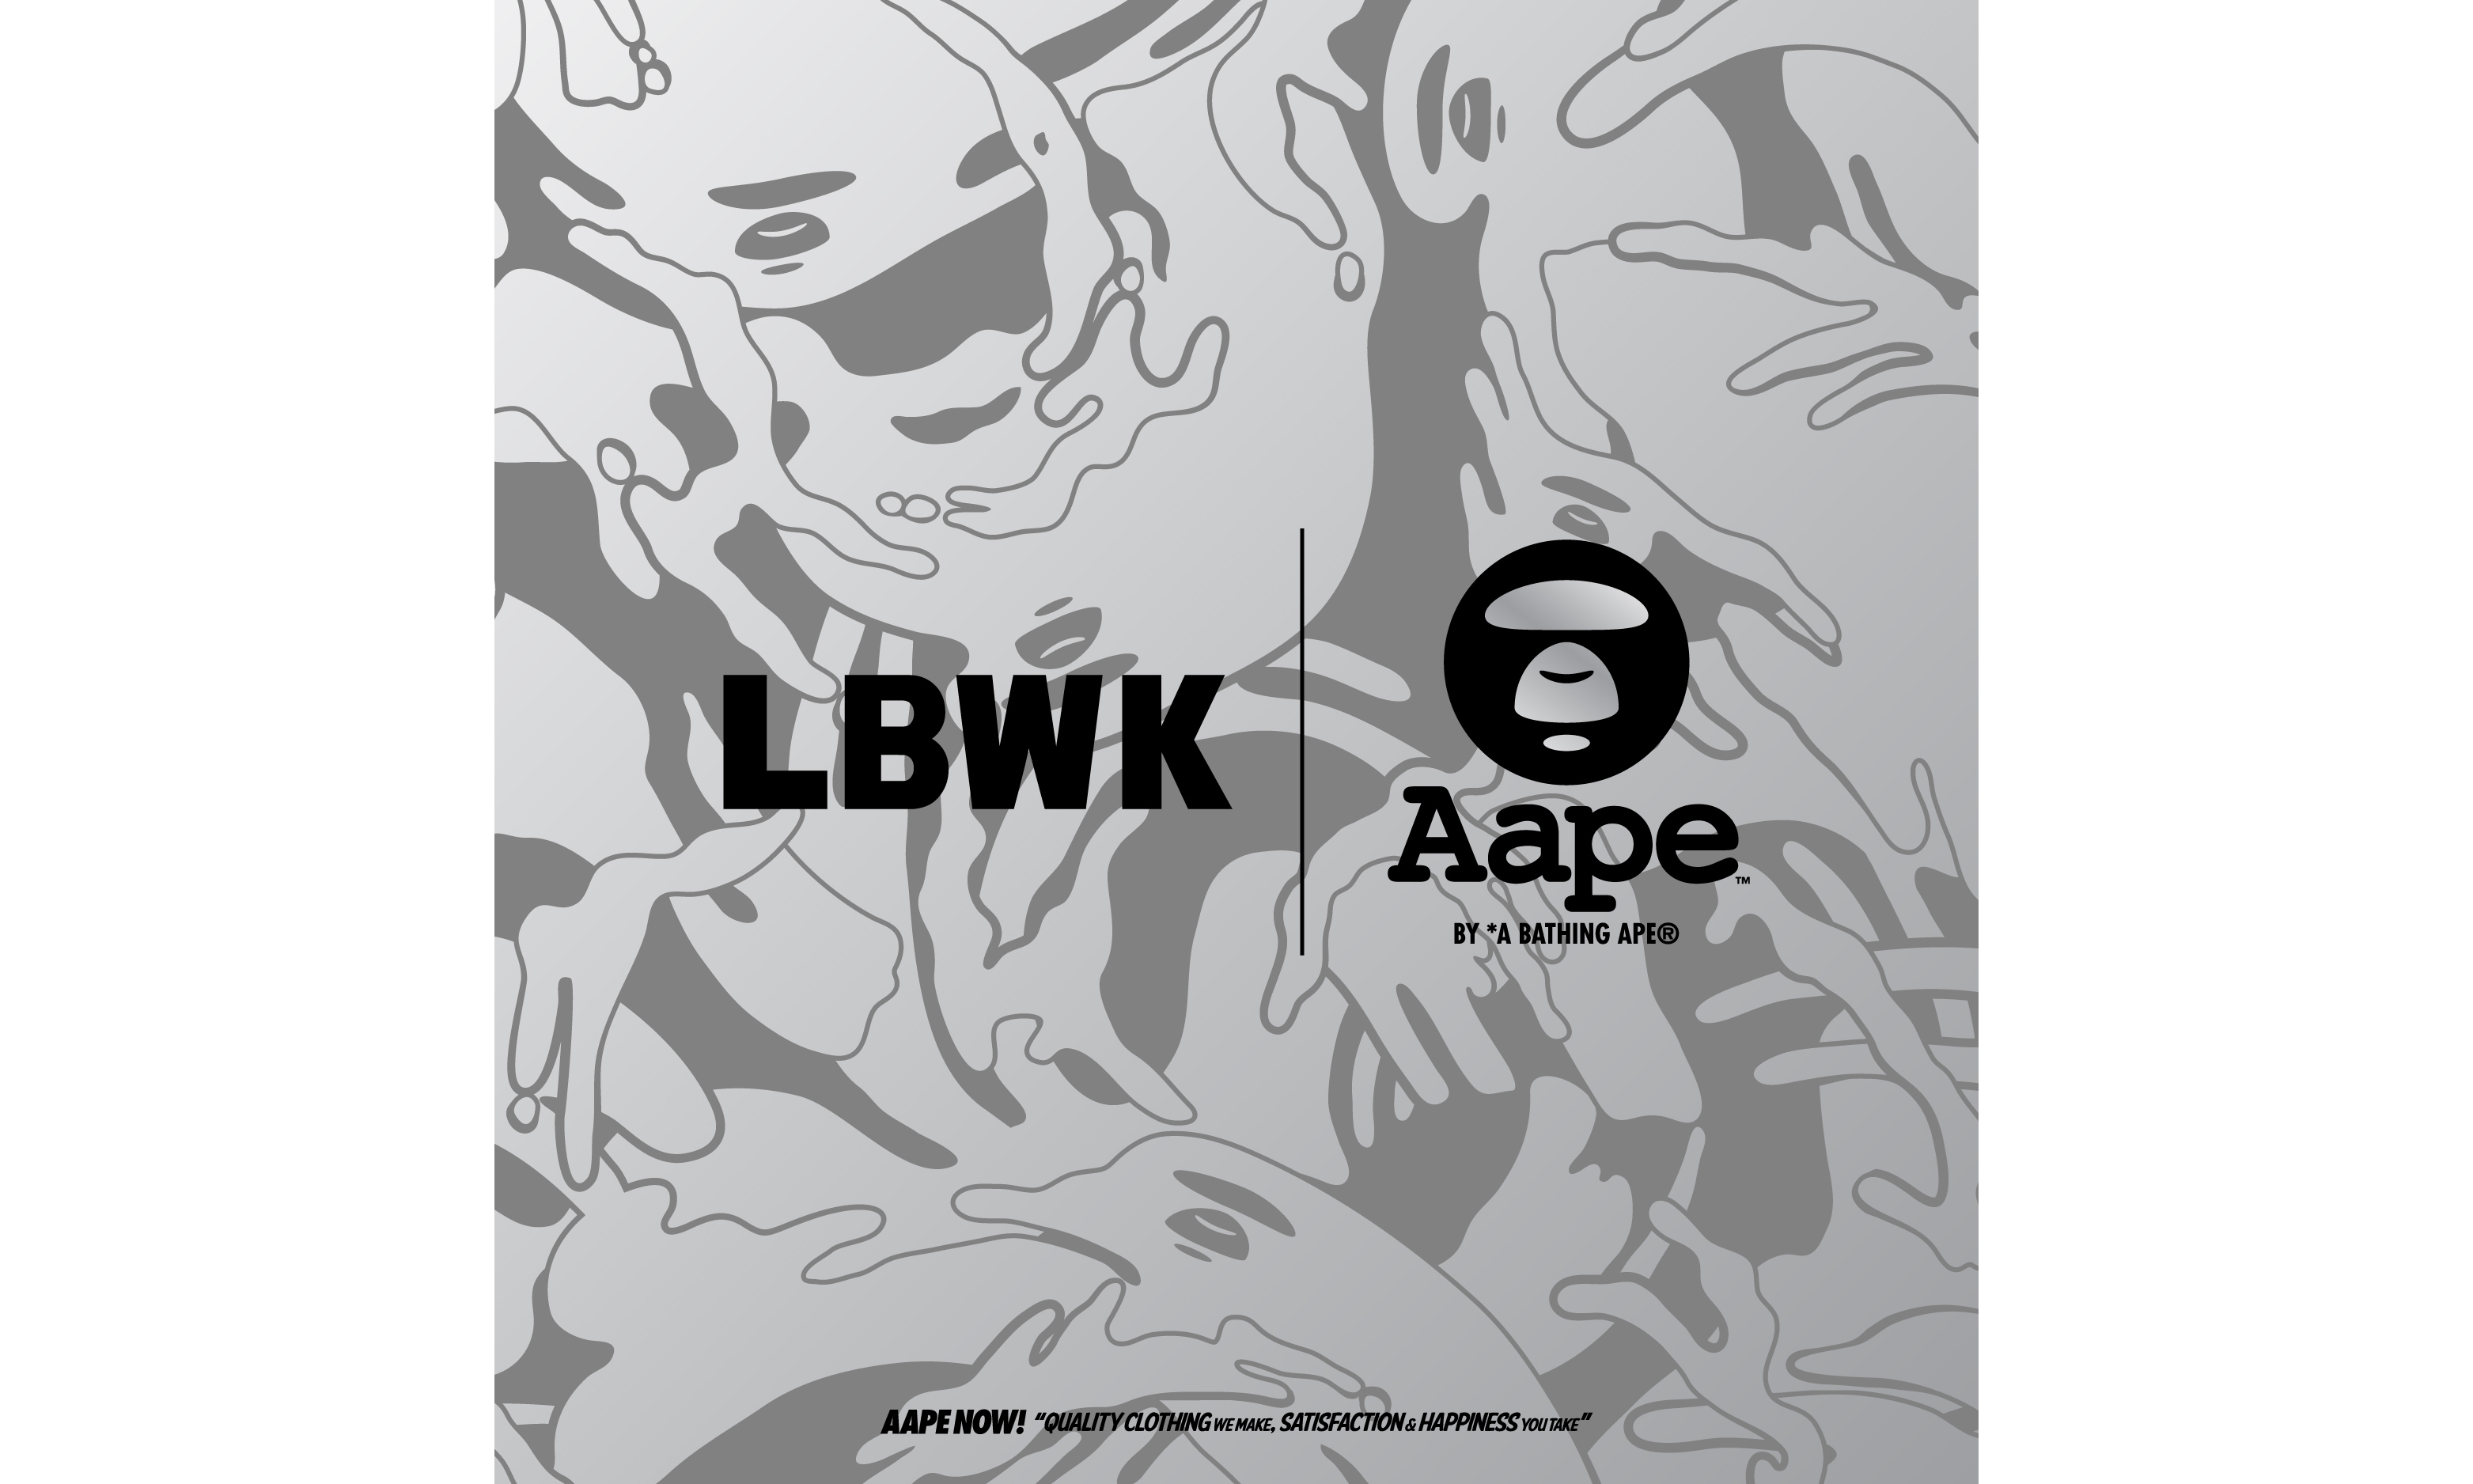 AAPE BY A BATHING APE® x LIBERTY WALK 发布联乘系列